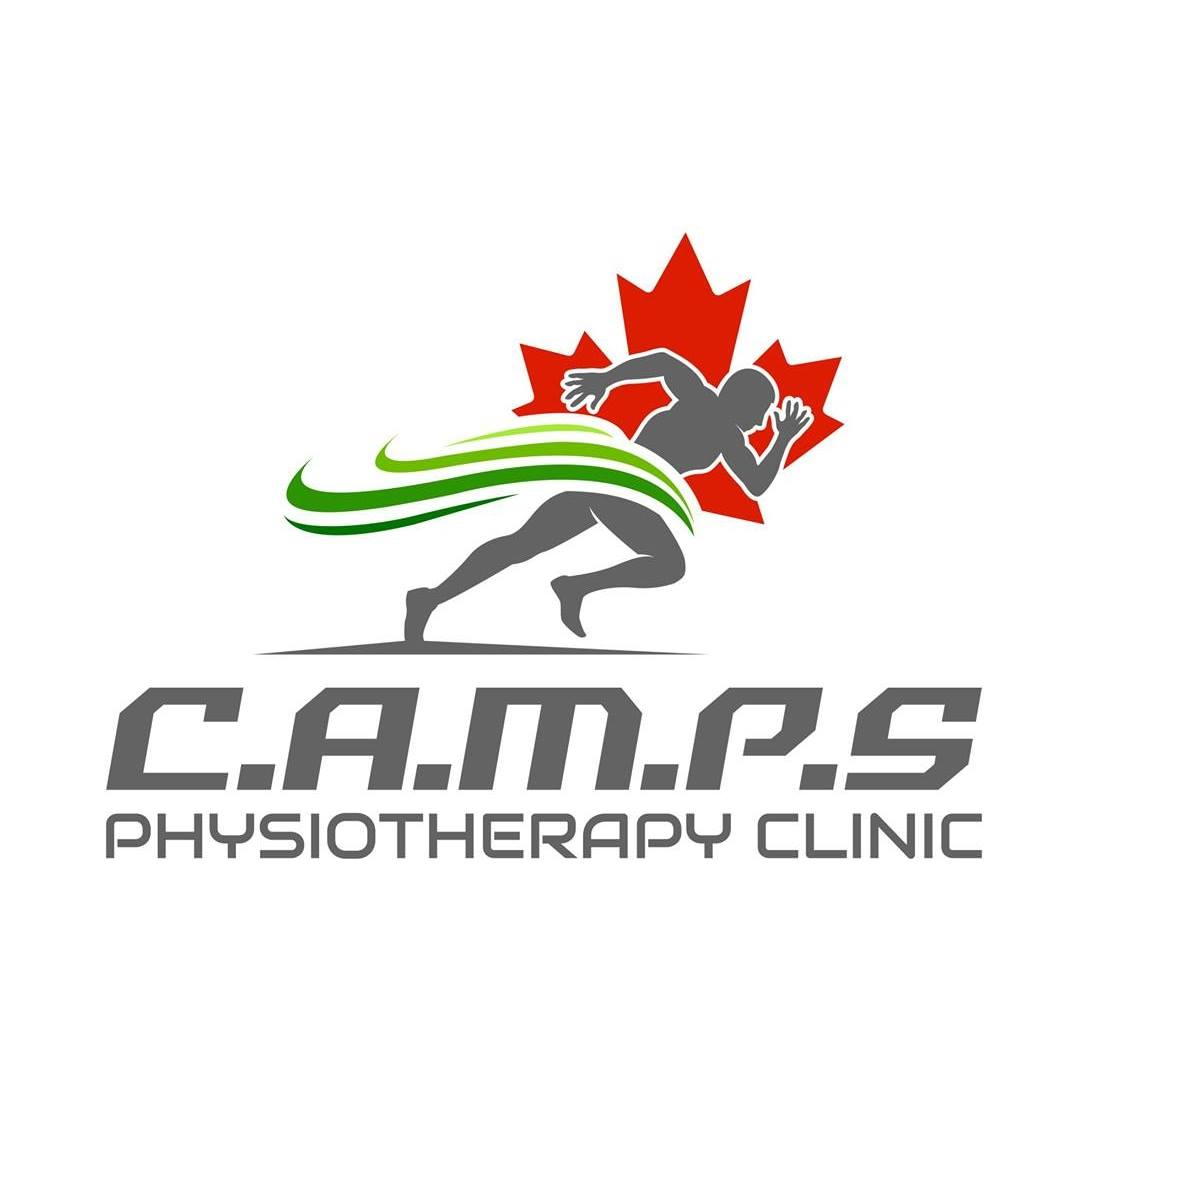 Book an Appointment at Best Hospitals and Clinics in karachi - C.A.M.P.S Physiotherapy Clinic (DHA)